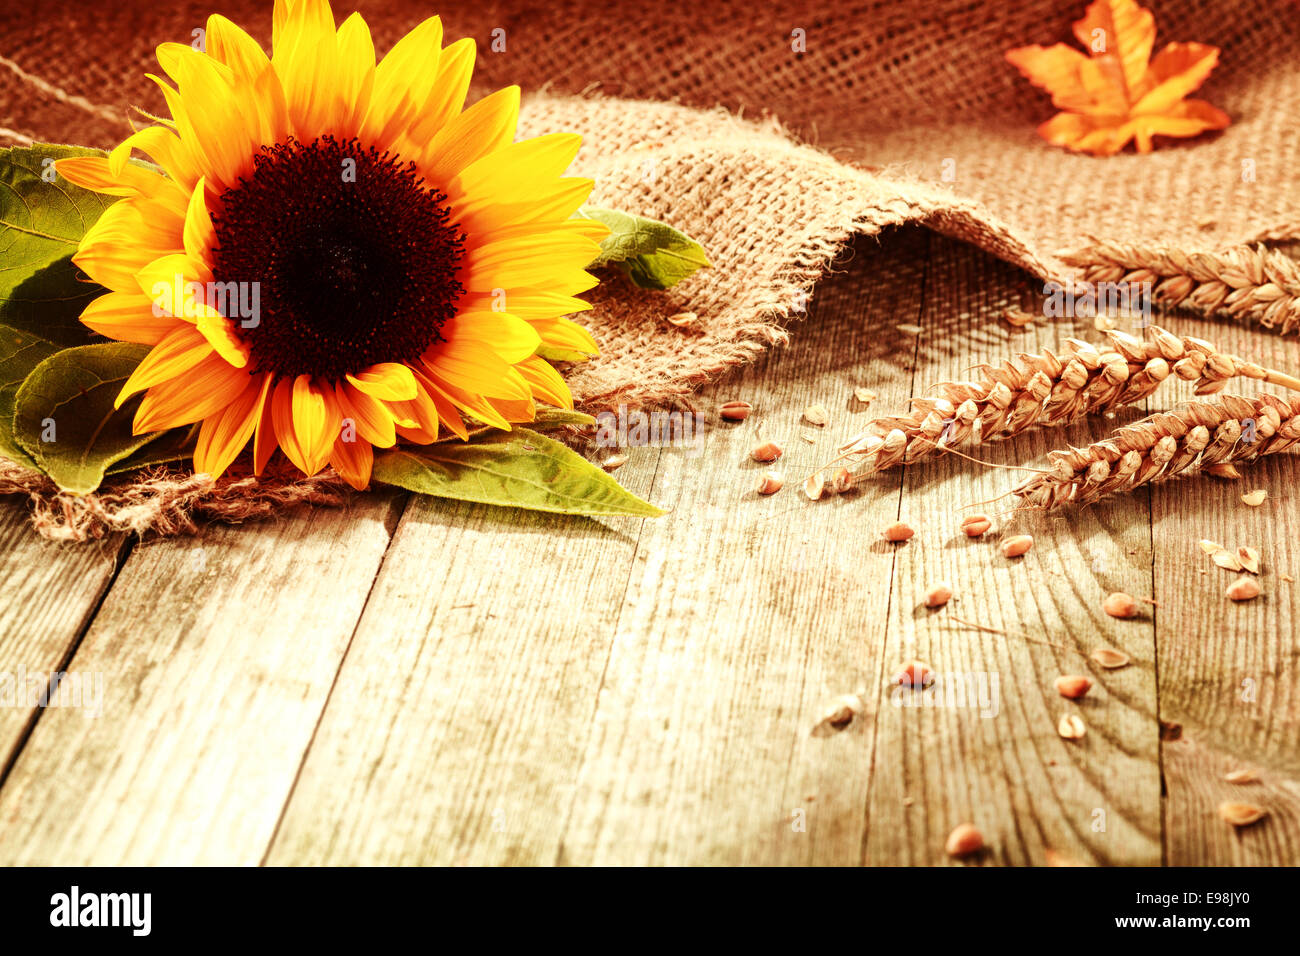 Fall Sunflowers Wallpaper Rustic Background With A Bright Colorful Yellow Sunflower